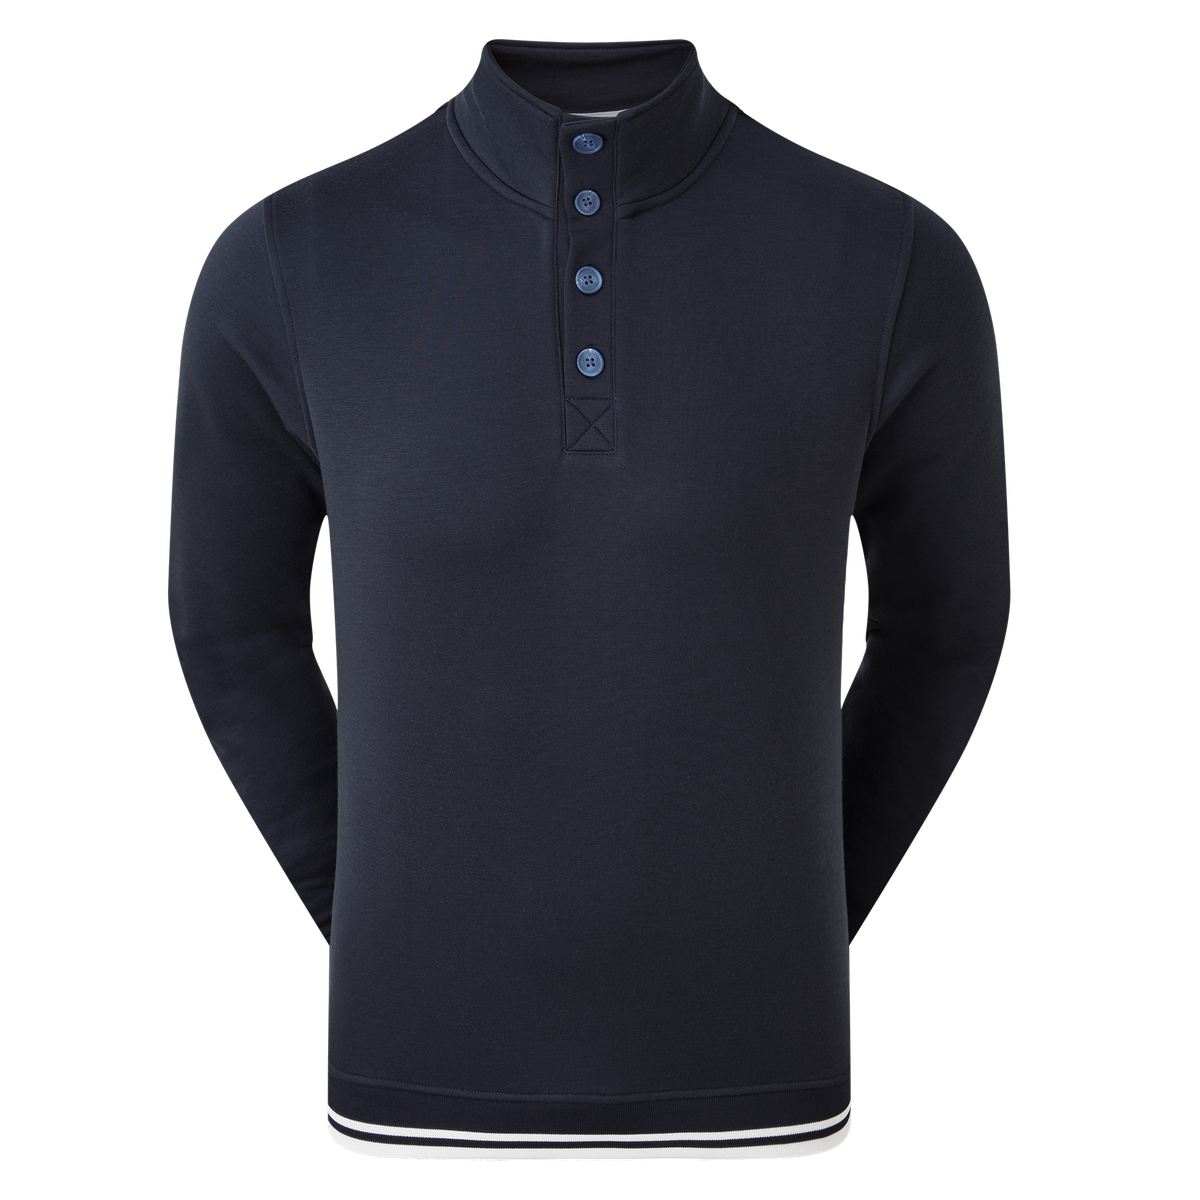 Jersey Fleece Backed Buttoned Collar Mid-Layer